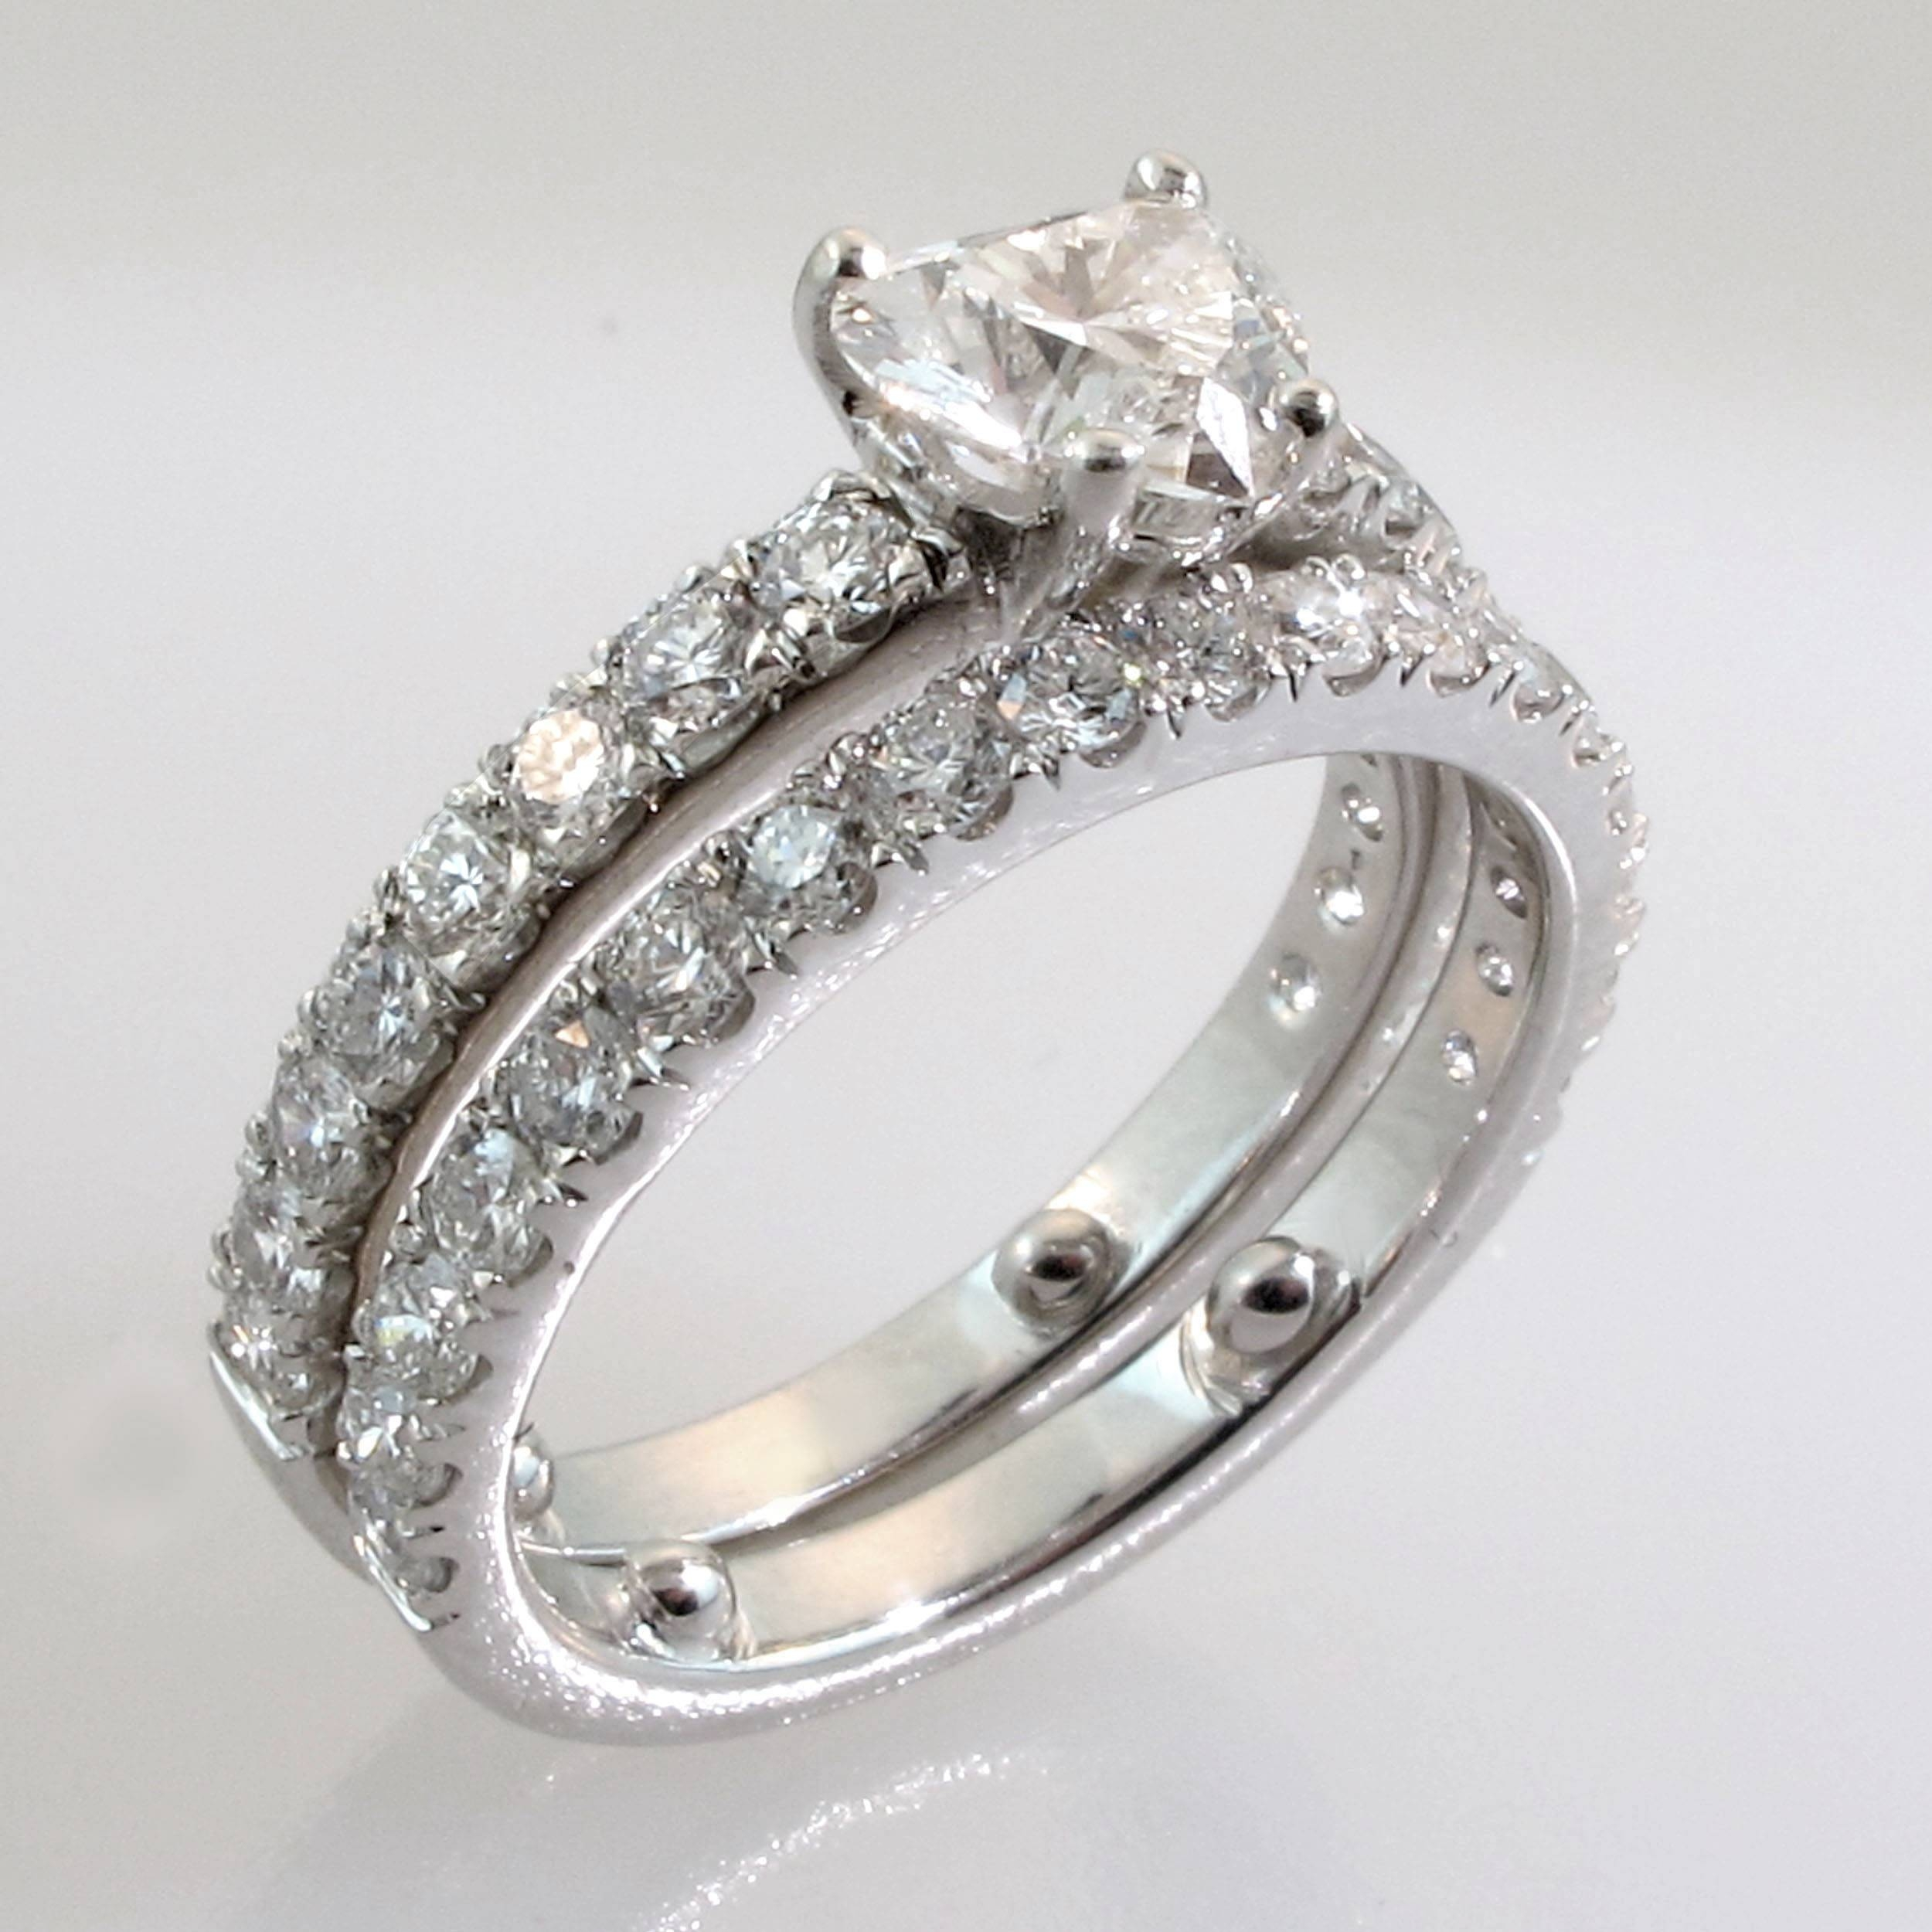 of engagement ring wedding zirconia cubic cz high rings luxury quality